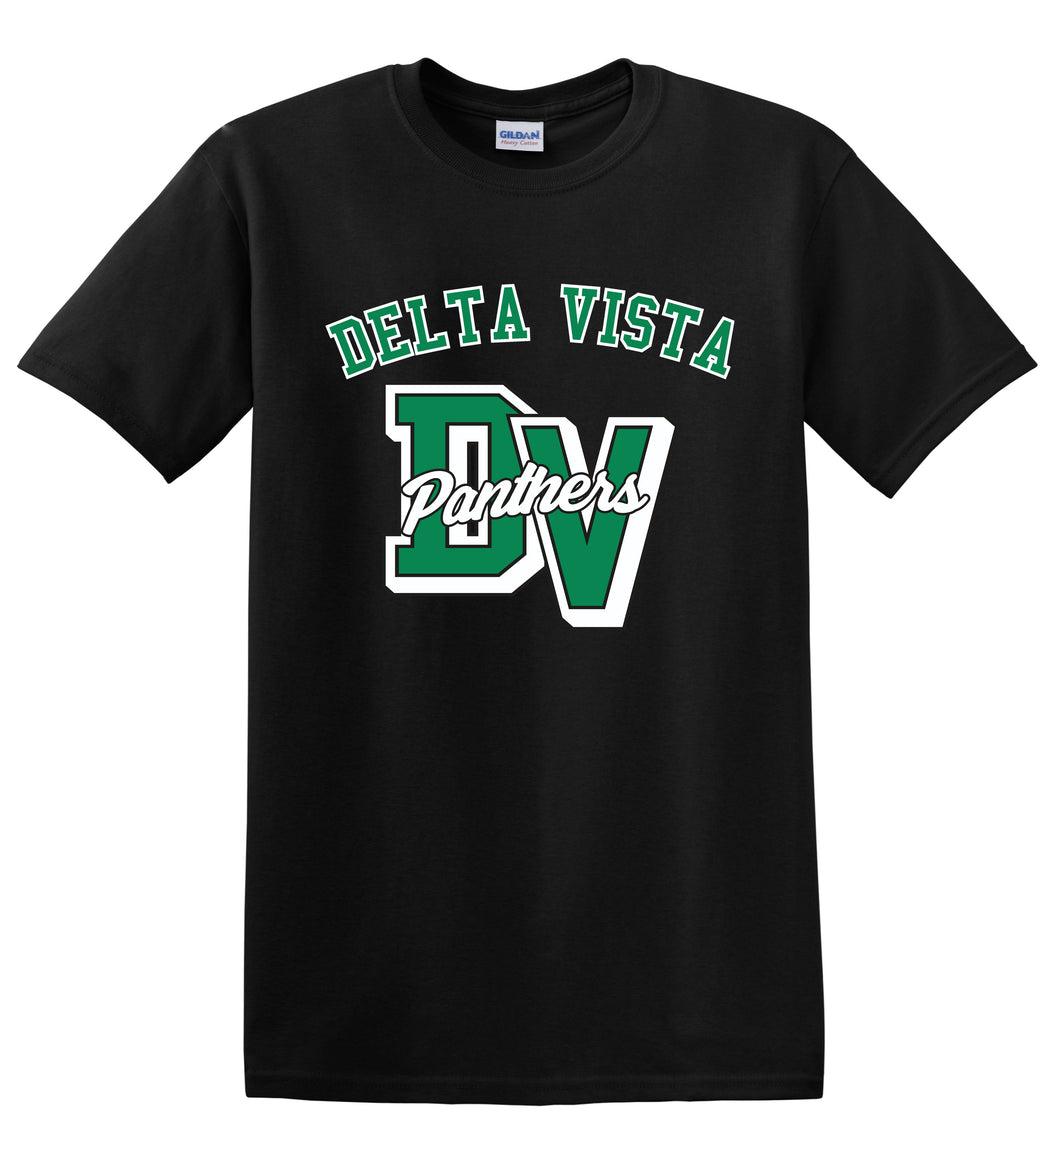 Delta Vista Panthers Spirit 2018 - Cotton T Shirt